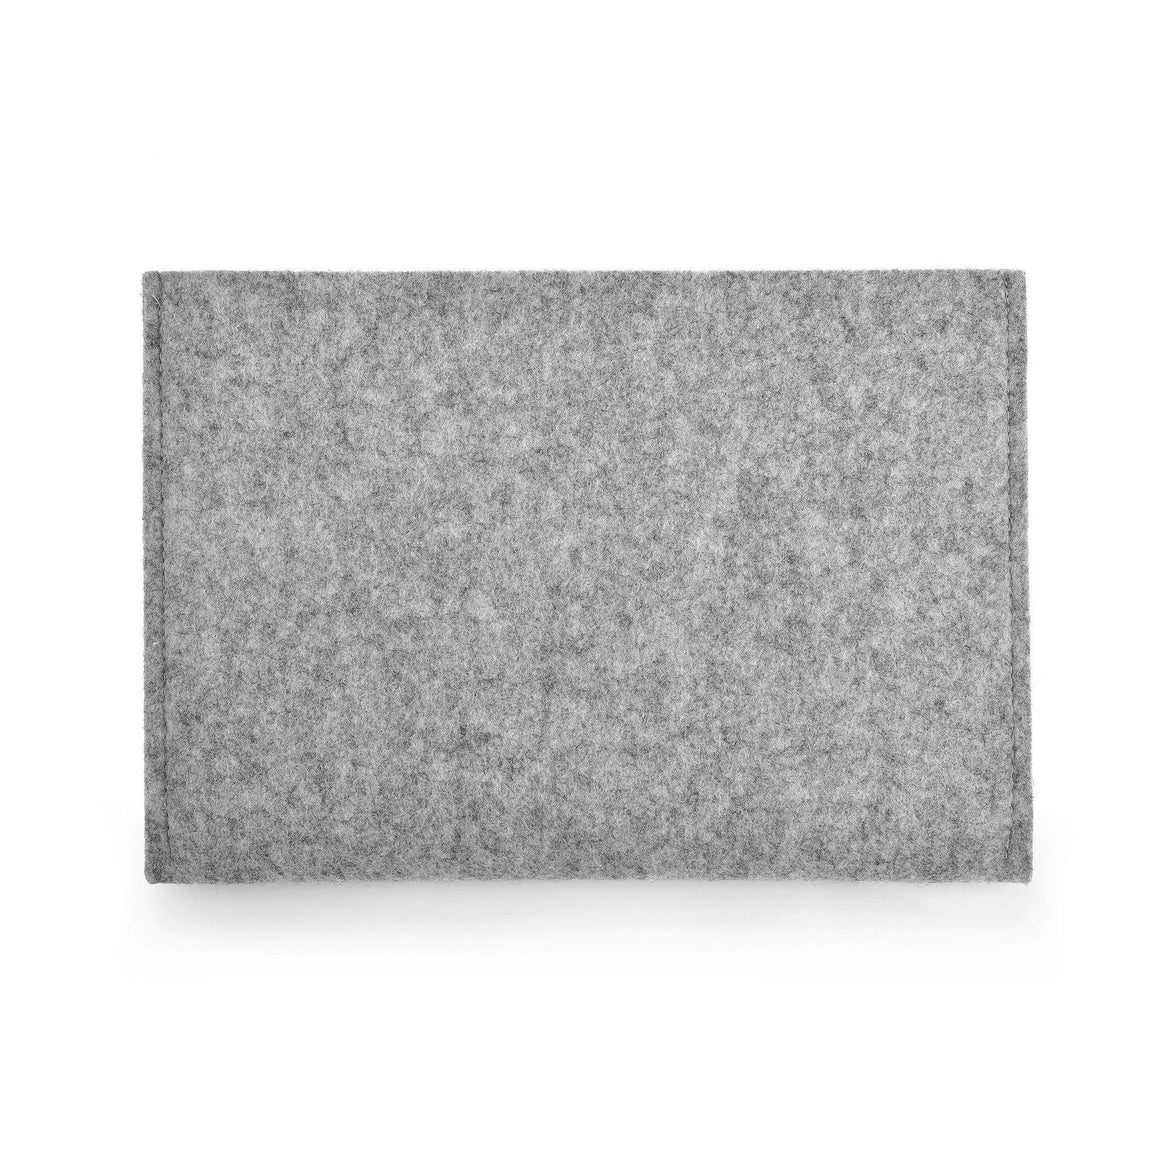 iPad Wool Felt Cover Grey Landscape - Wrappers UK